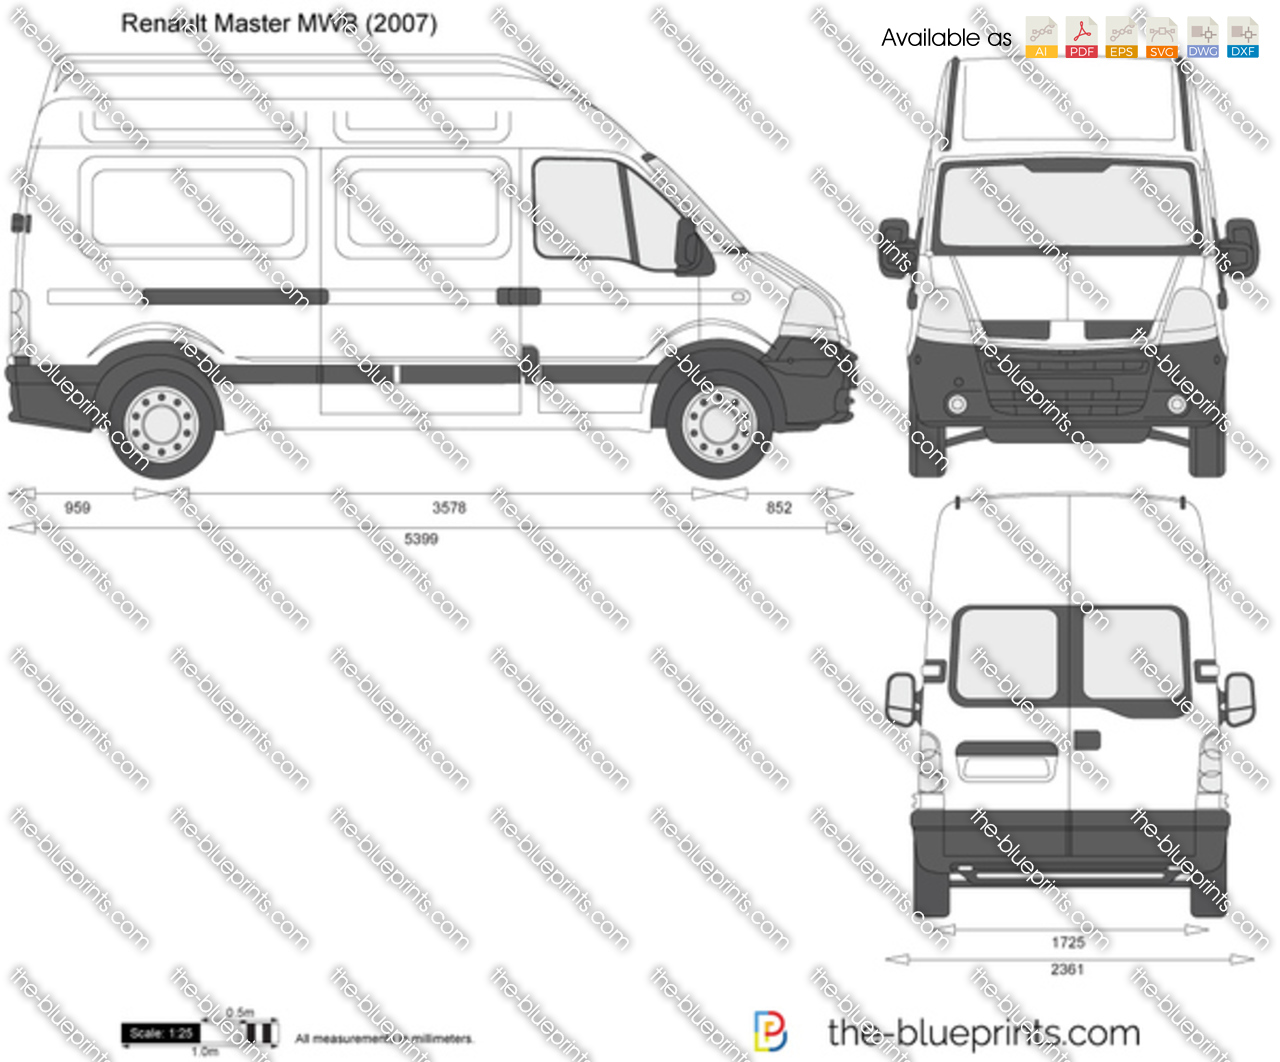 the vector drawing renault master mwb. Black Bedroom Furniture Sets. Home Design Ideas